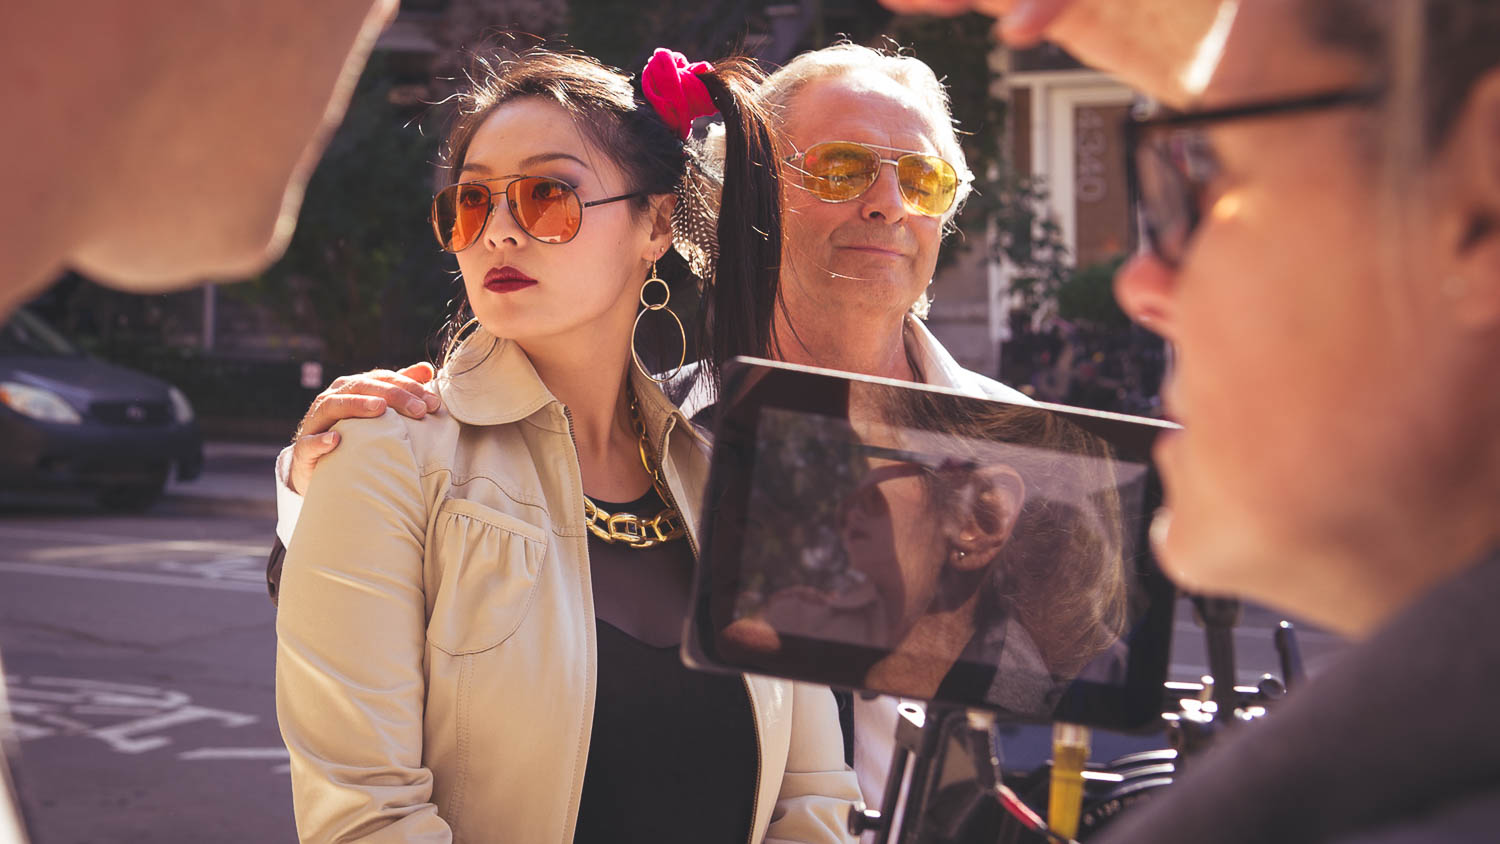 During the shooting of a scene from the short film the little change exterior scene of an old man and is bride, a young Chinese woman. The film was produced in Montreal, the photography was done by Richard Duquette, cinematographer from Montreal.